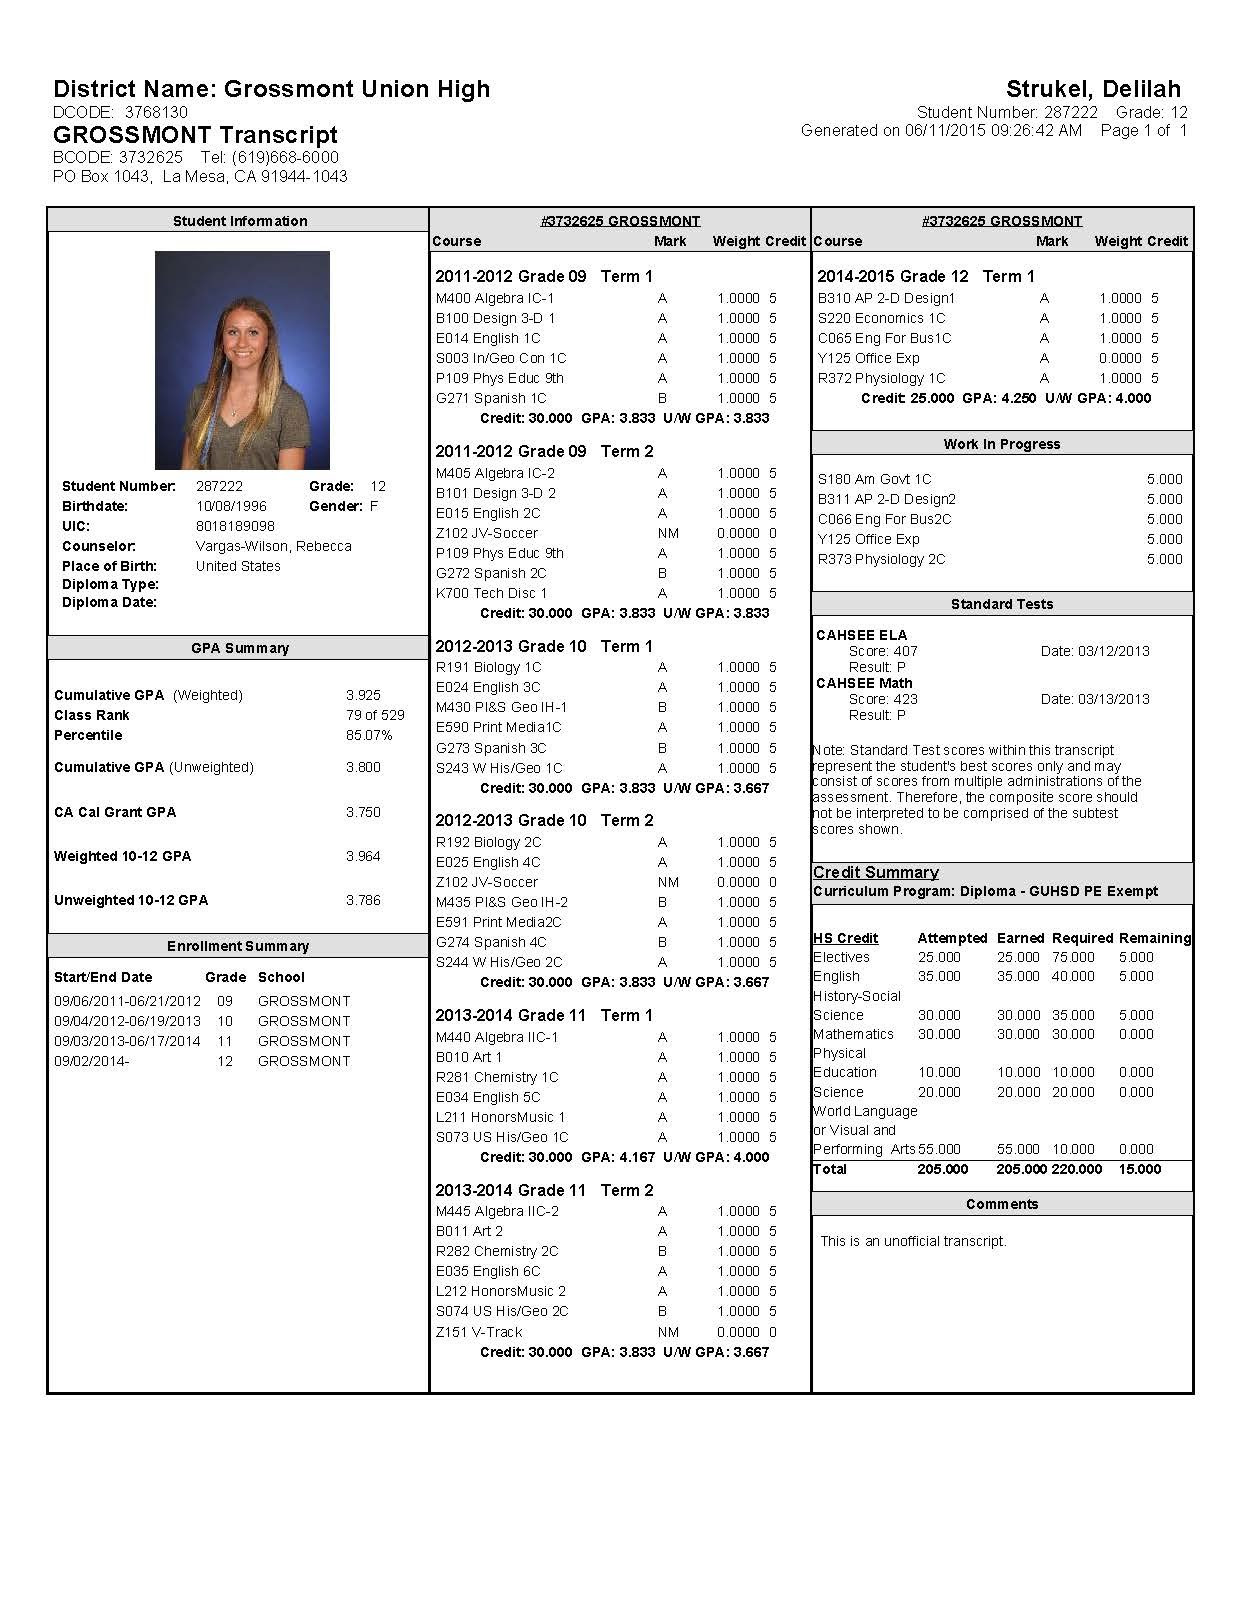 transcript delilah strukel s career portfolio throughout high school i have always done my best to get good grades my freshman year i worked hard and got a 3 8 gpa i also got straight o s in